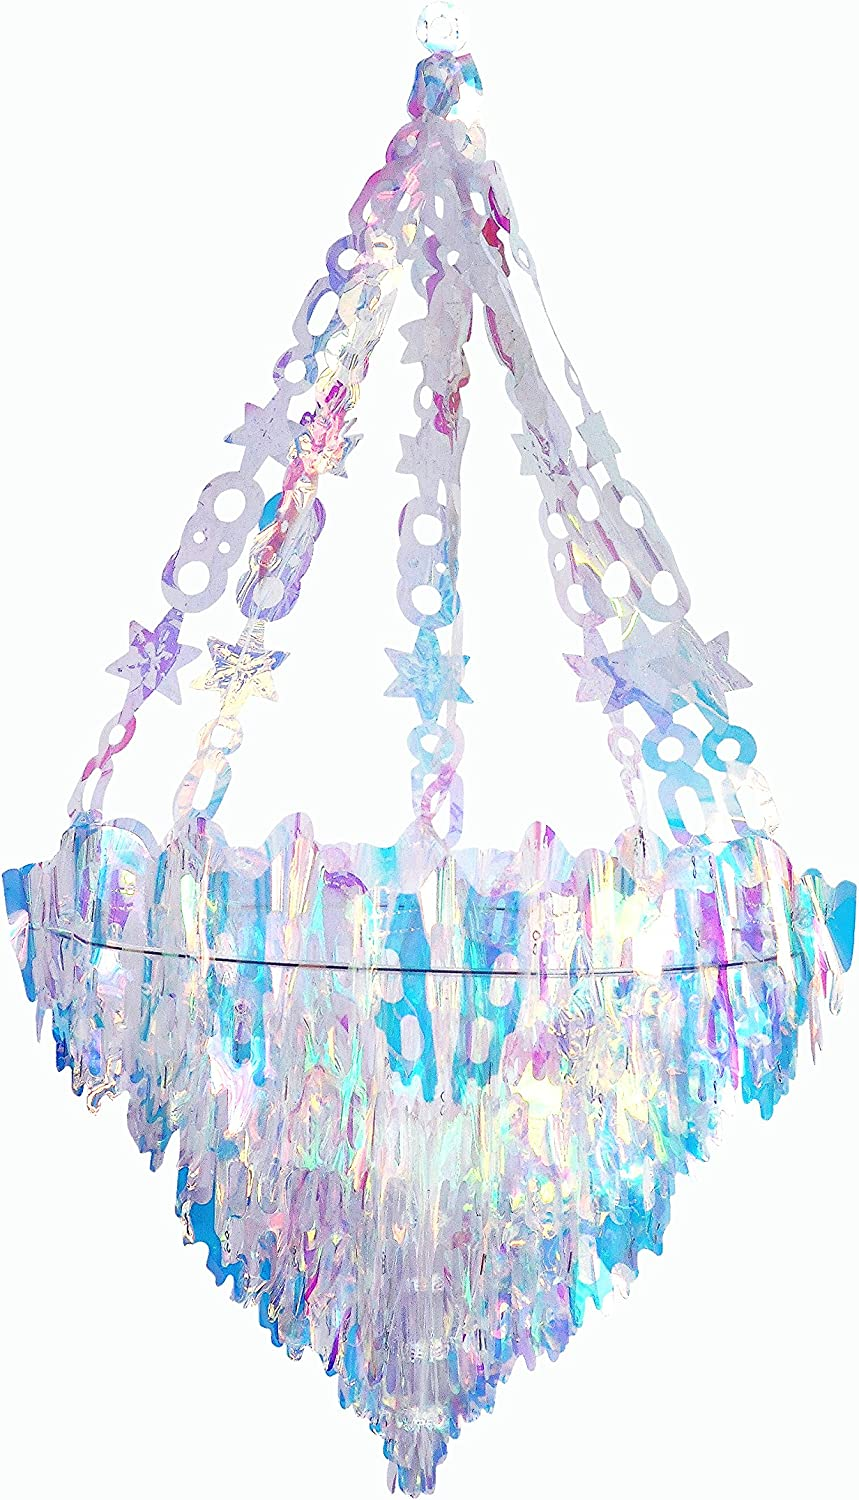 NICROLANDEE Iridescent Party Decorations Hanging Chandelier Shaped Ceiling Ornaments for Christmas New Year Frozen Winter Wonderland Magical Unicorn Baby Bridal Shower Wedding Birthday Nursery Decor